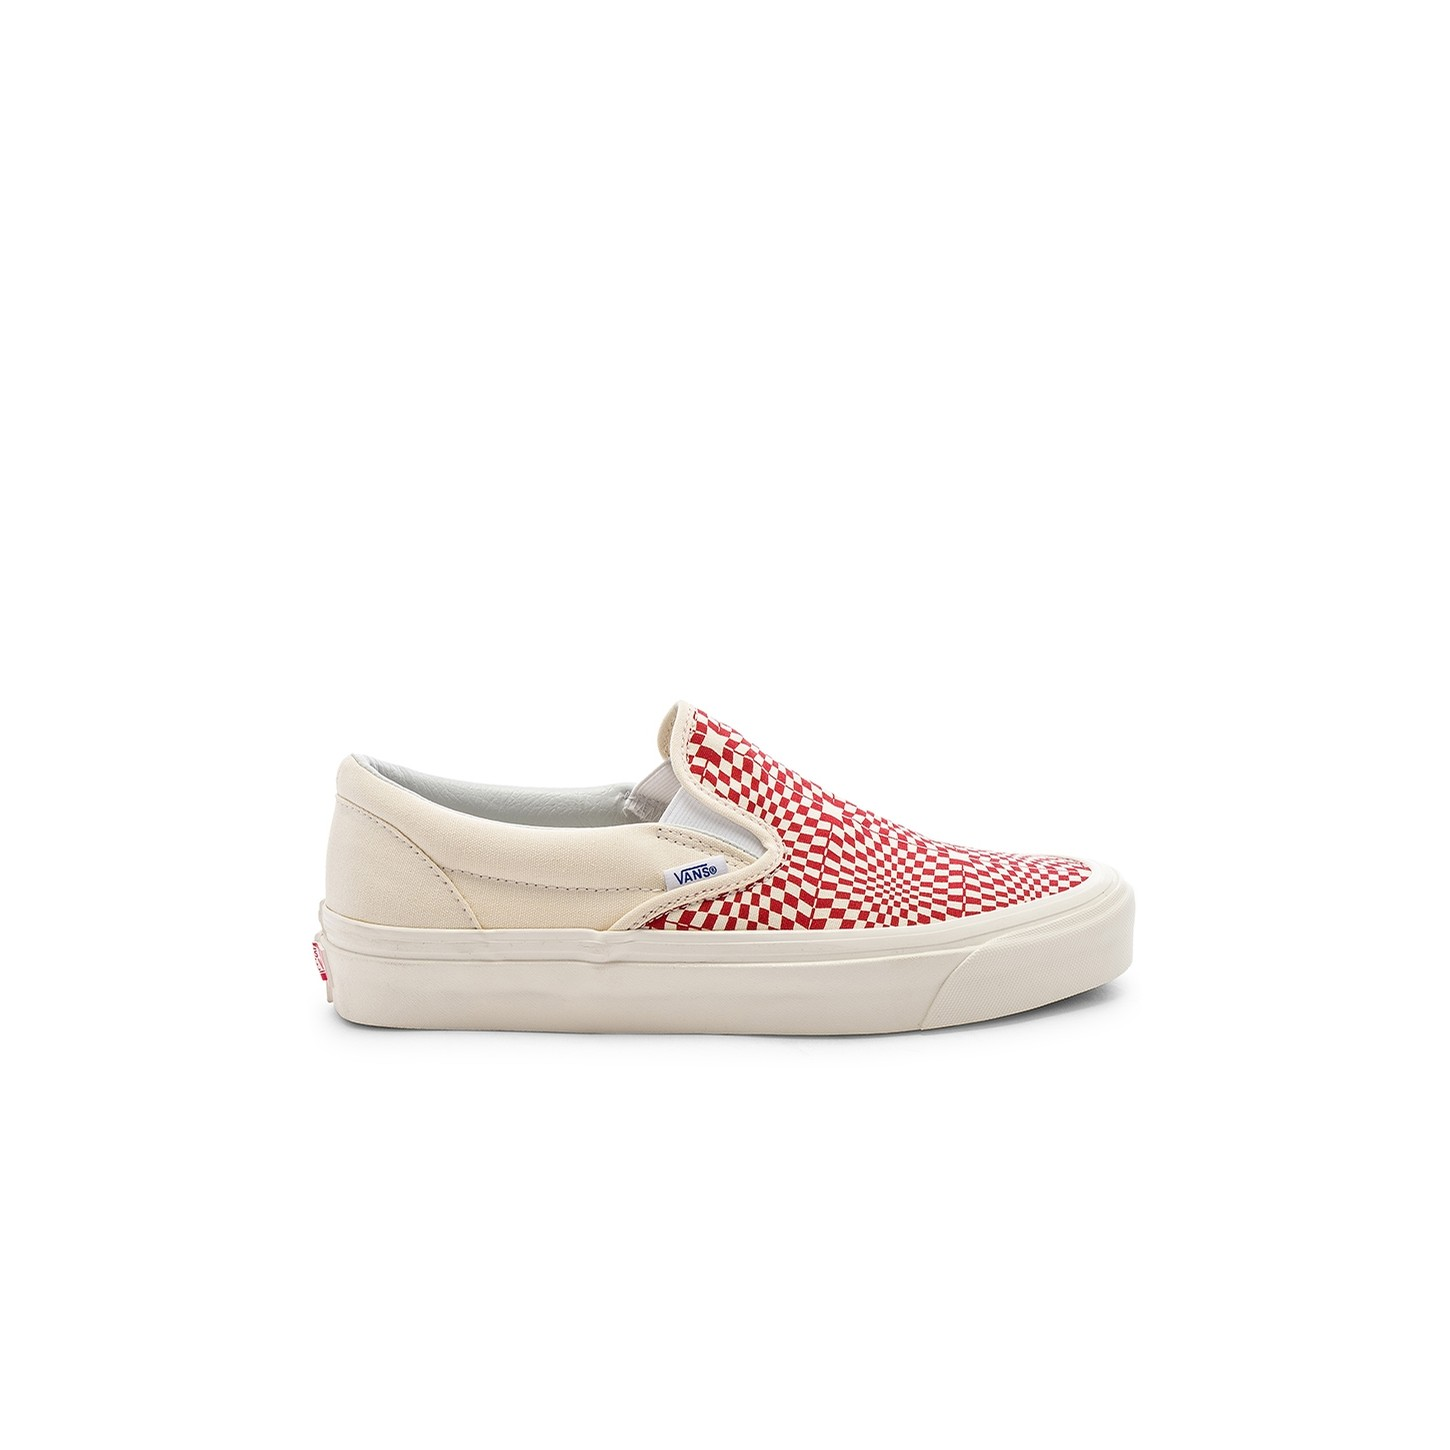 Classic Slip-On 9 (Anaheim Factory) OG Red/White/Warp Check